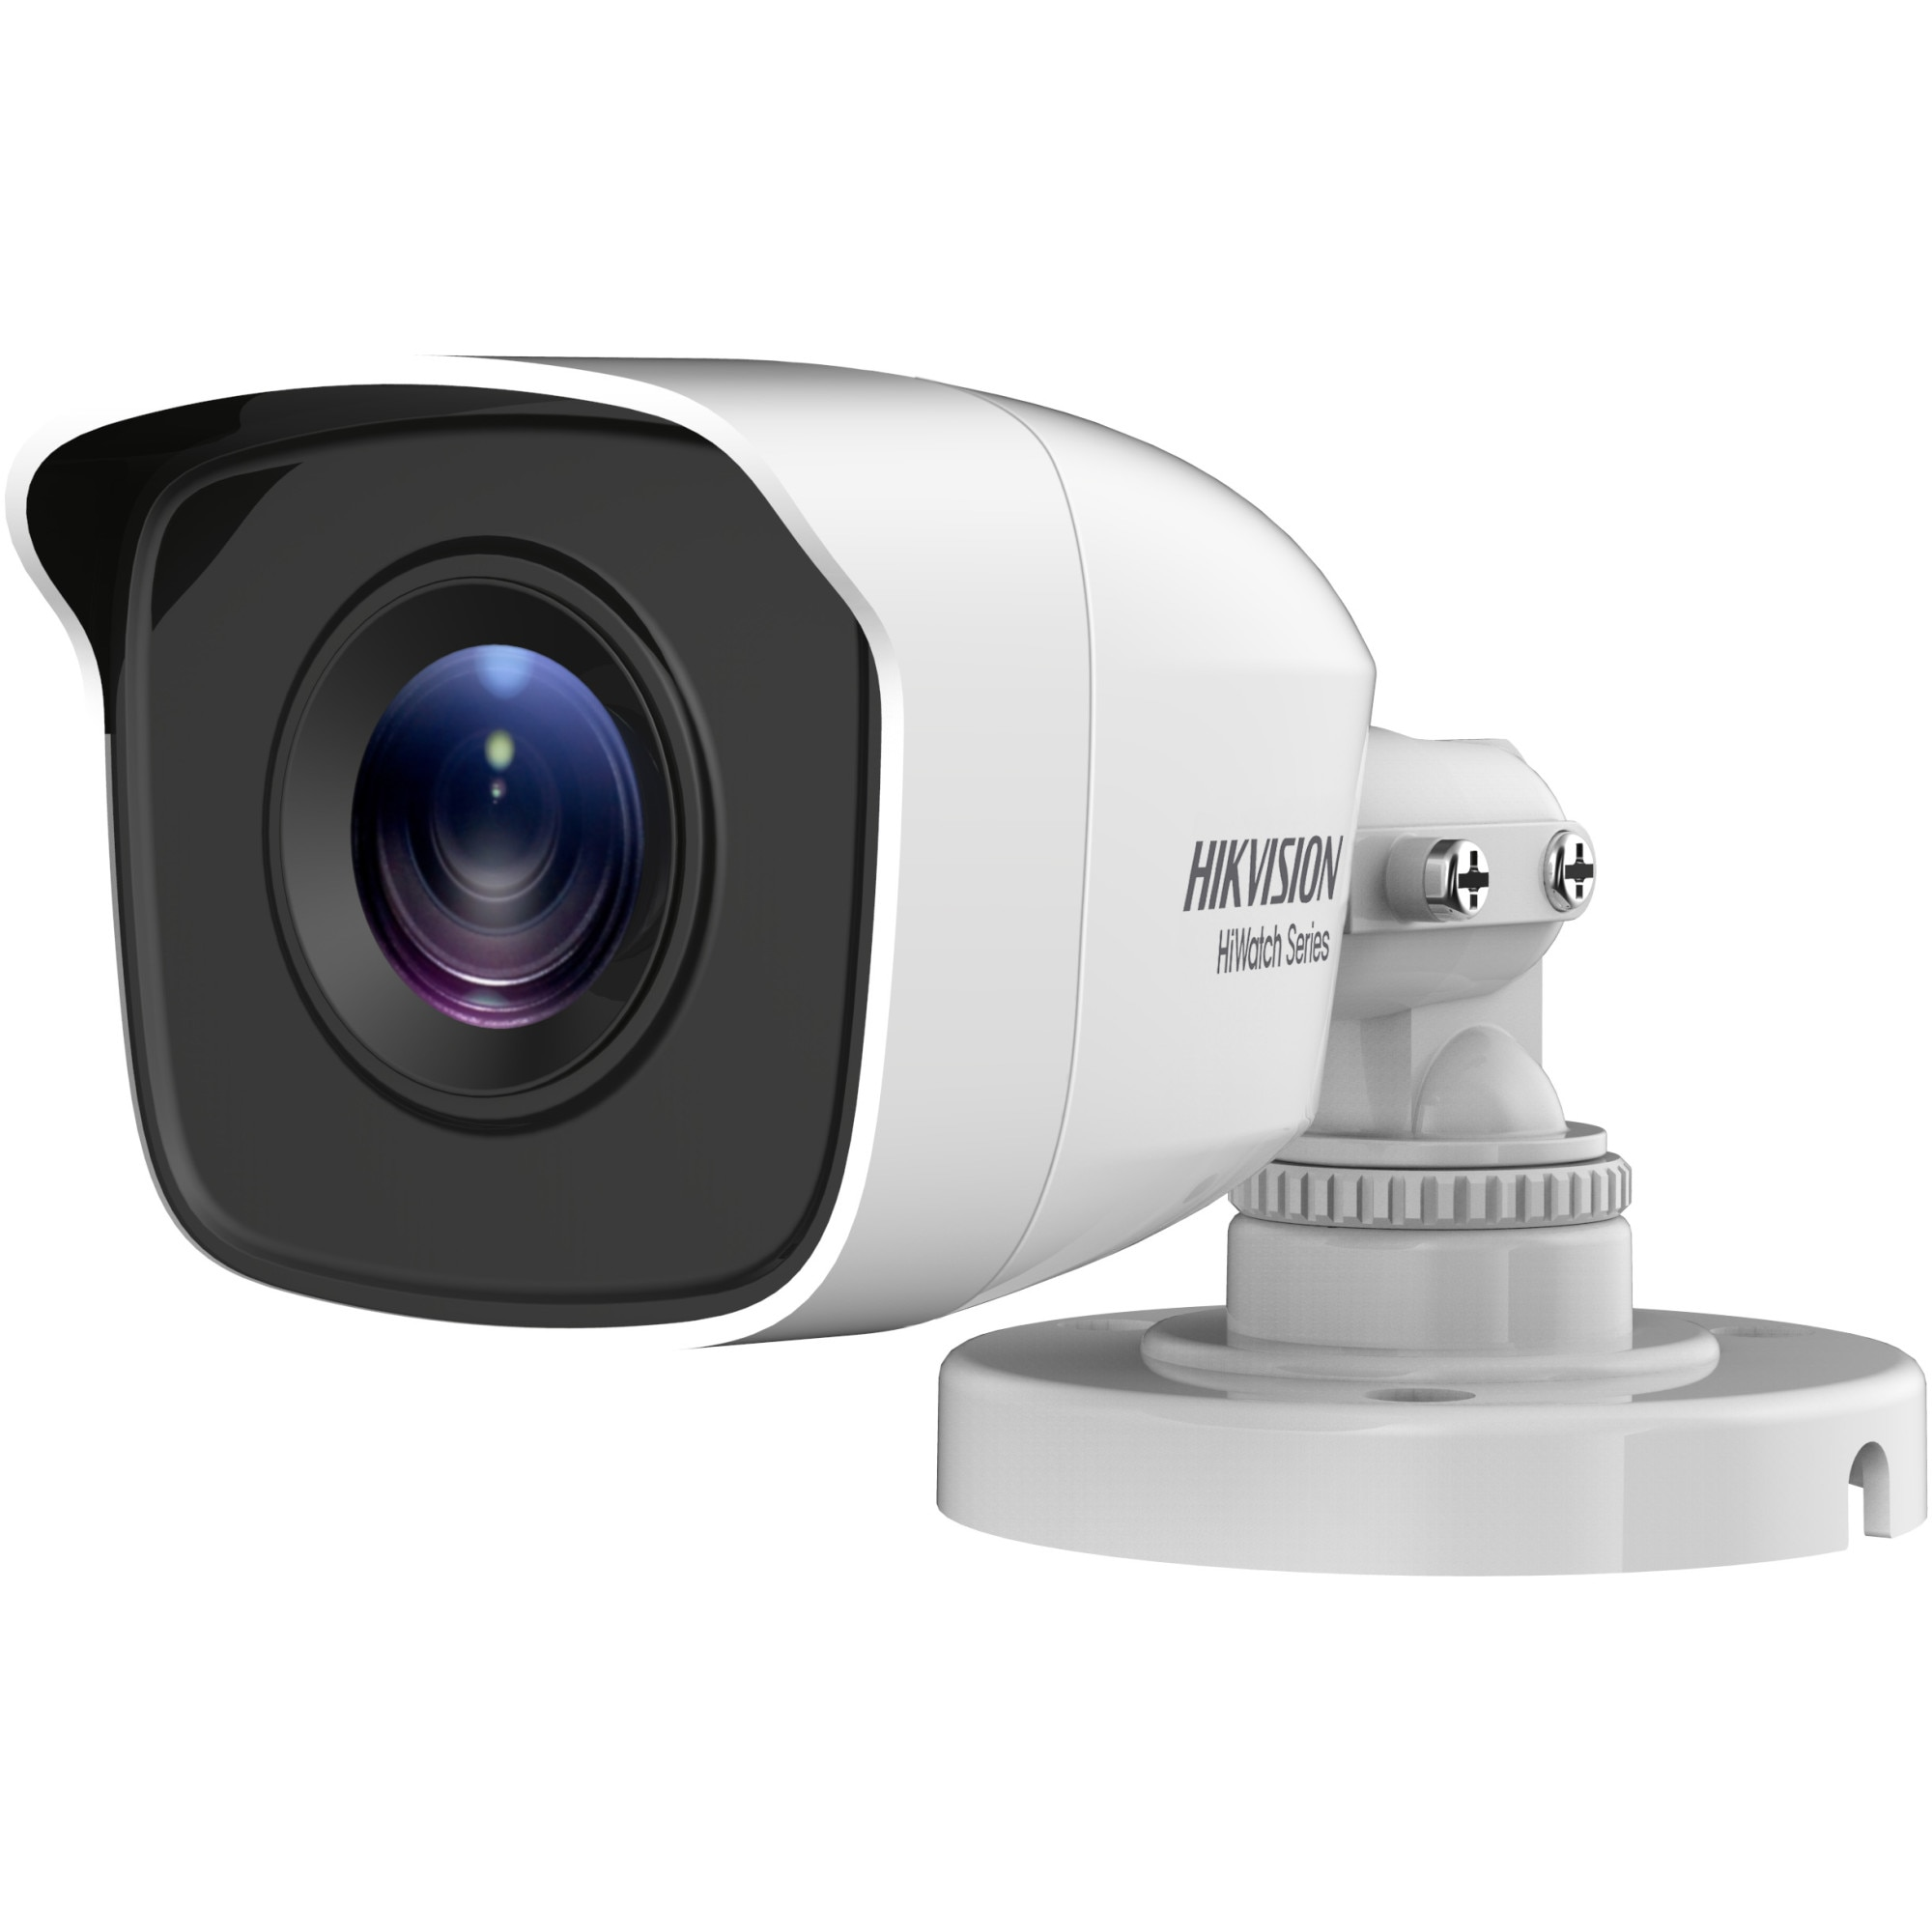 Fotografie Camera de supraveghere Hikvision HiWatch Turbo HD Bullet, 4MP, 2.8mm Lens, EXIR Bullet, 20m IR, IP66, Alb